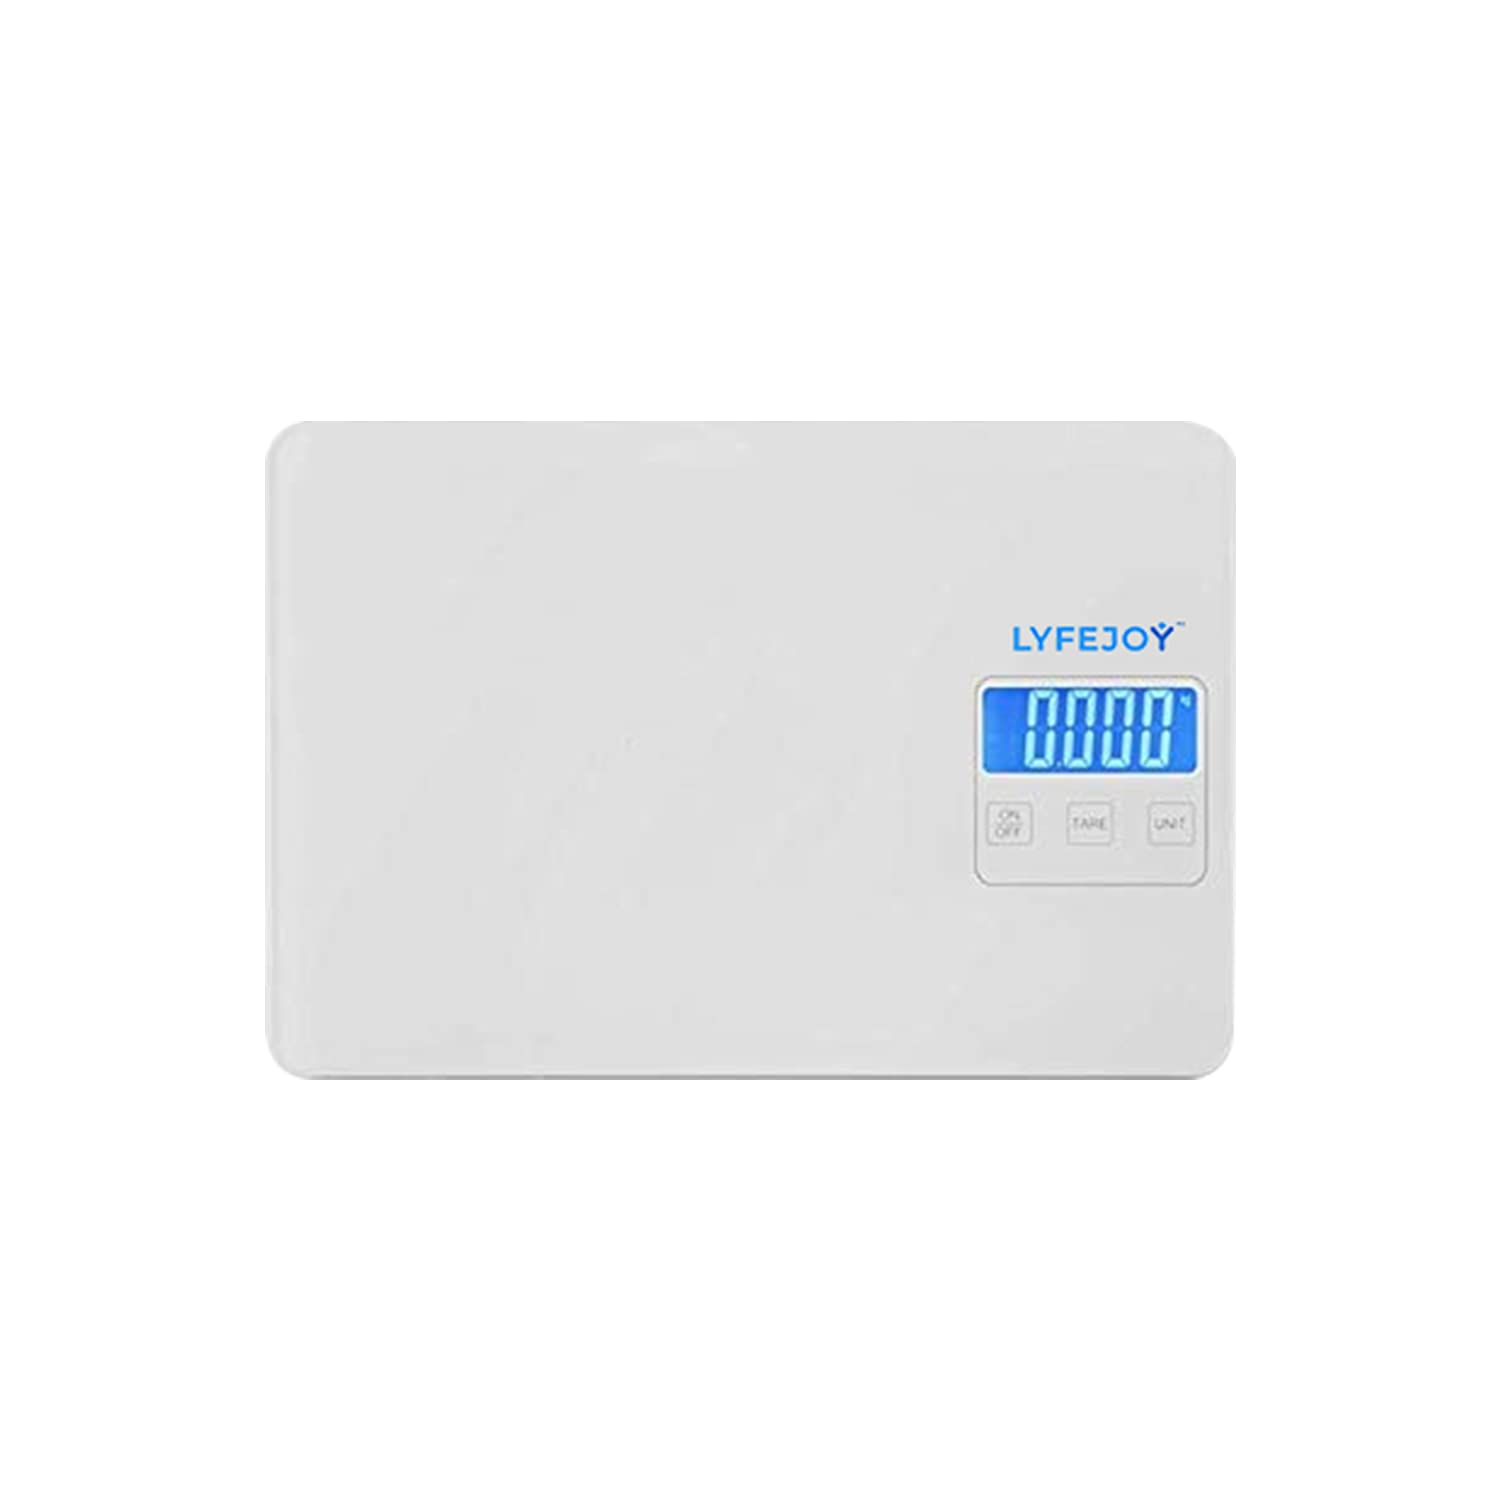 Lyfejoy Digital Kitchen Scale Weight Grams and Ounces for Cooking, Diet, Food Preparation, High Precision Milligram, Backlit Display, White Tempered Glass, 15kg/33lbs